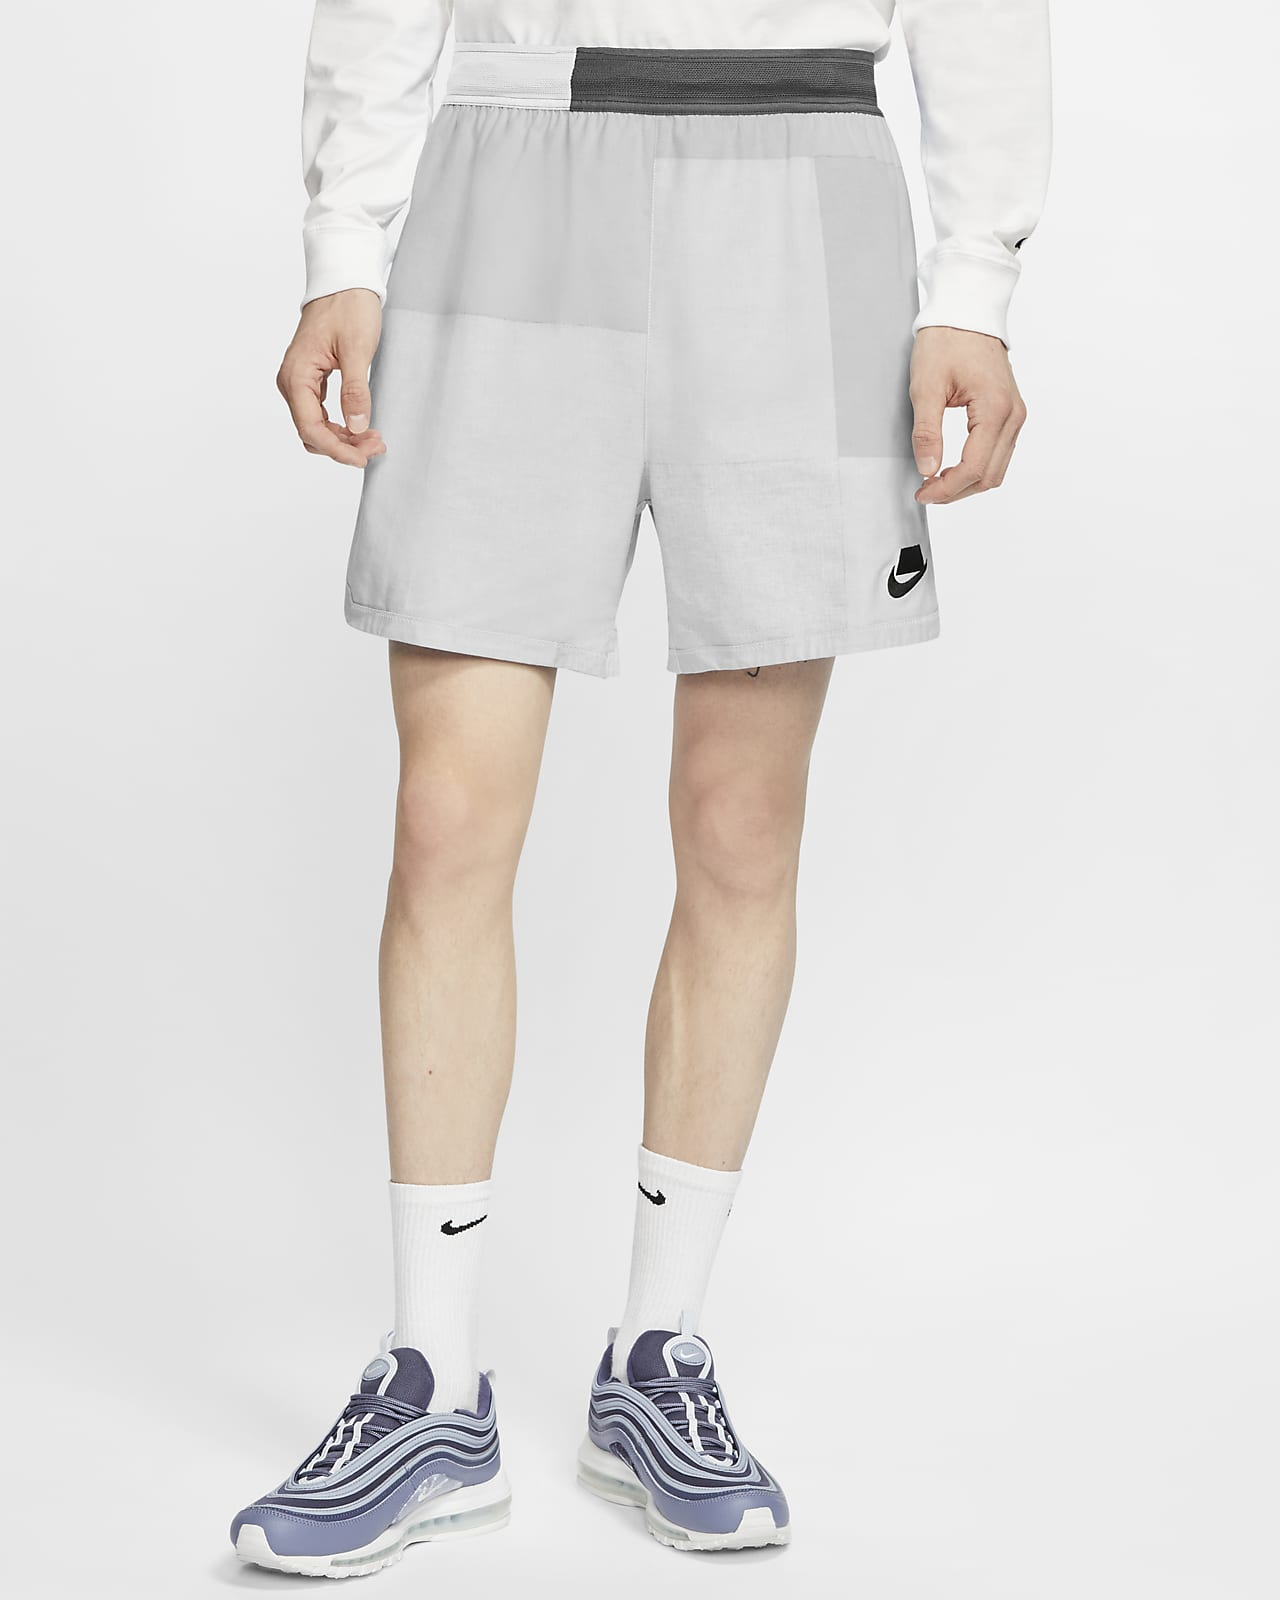 Nike Sportswear NSW Men's Woven Shorts